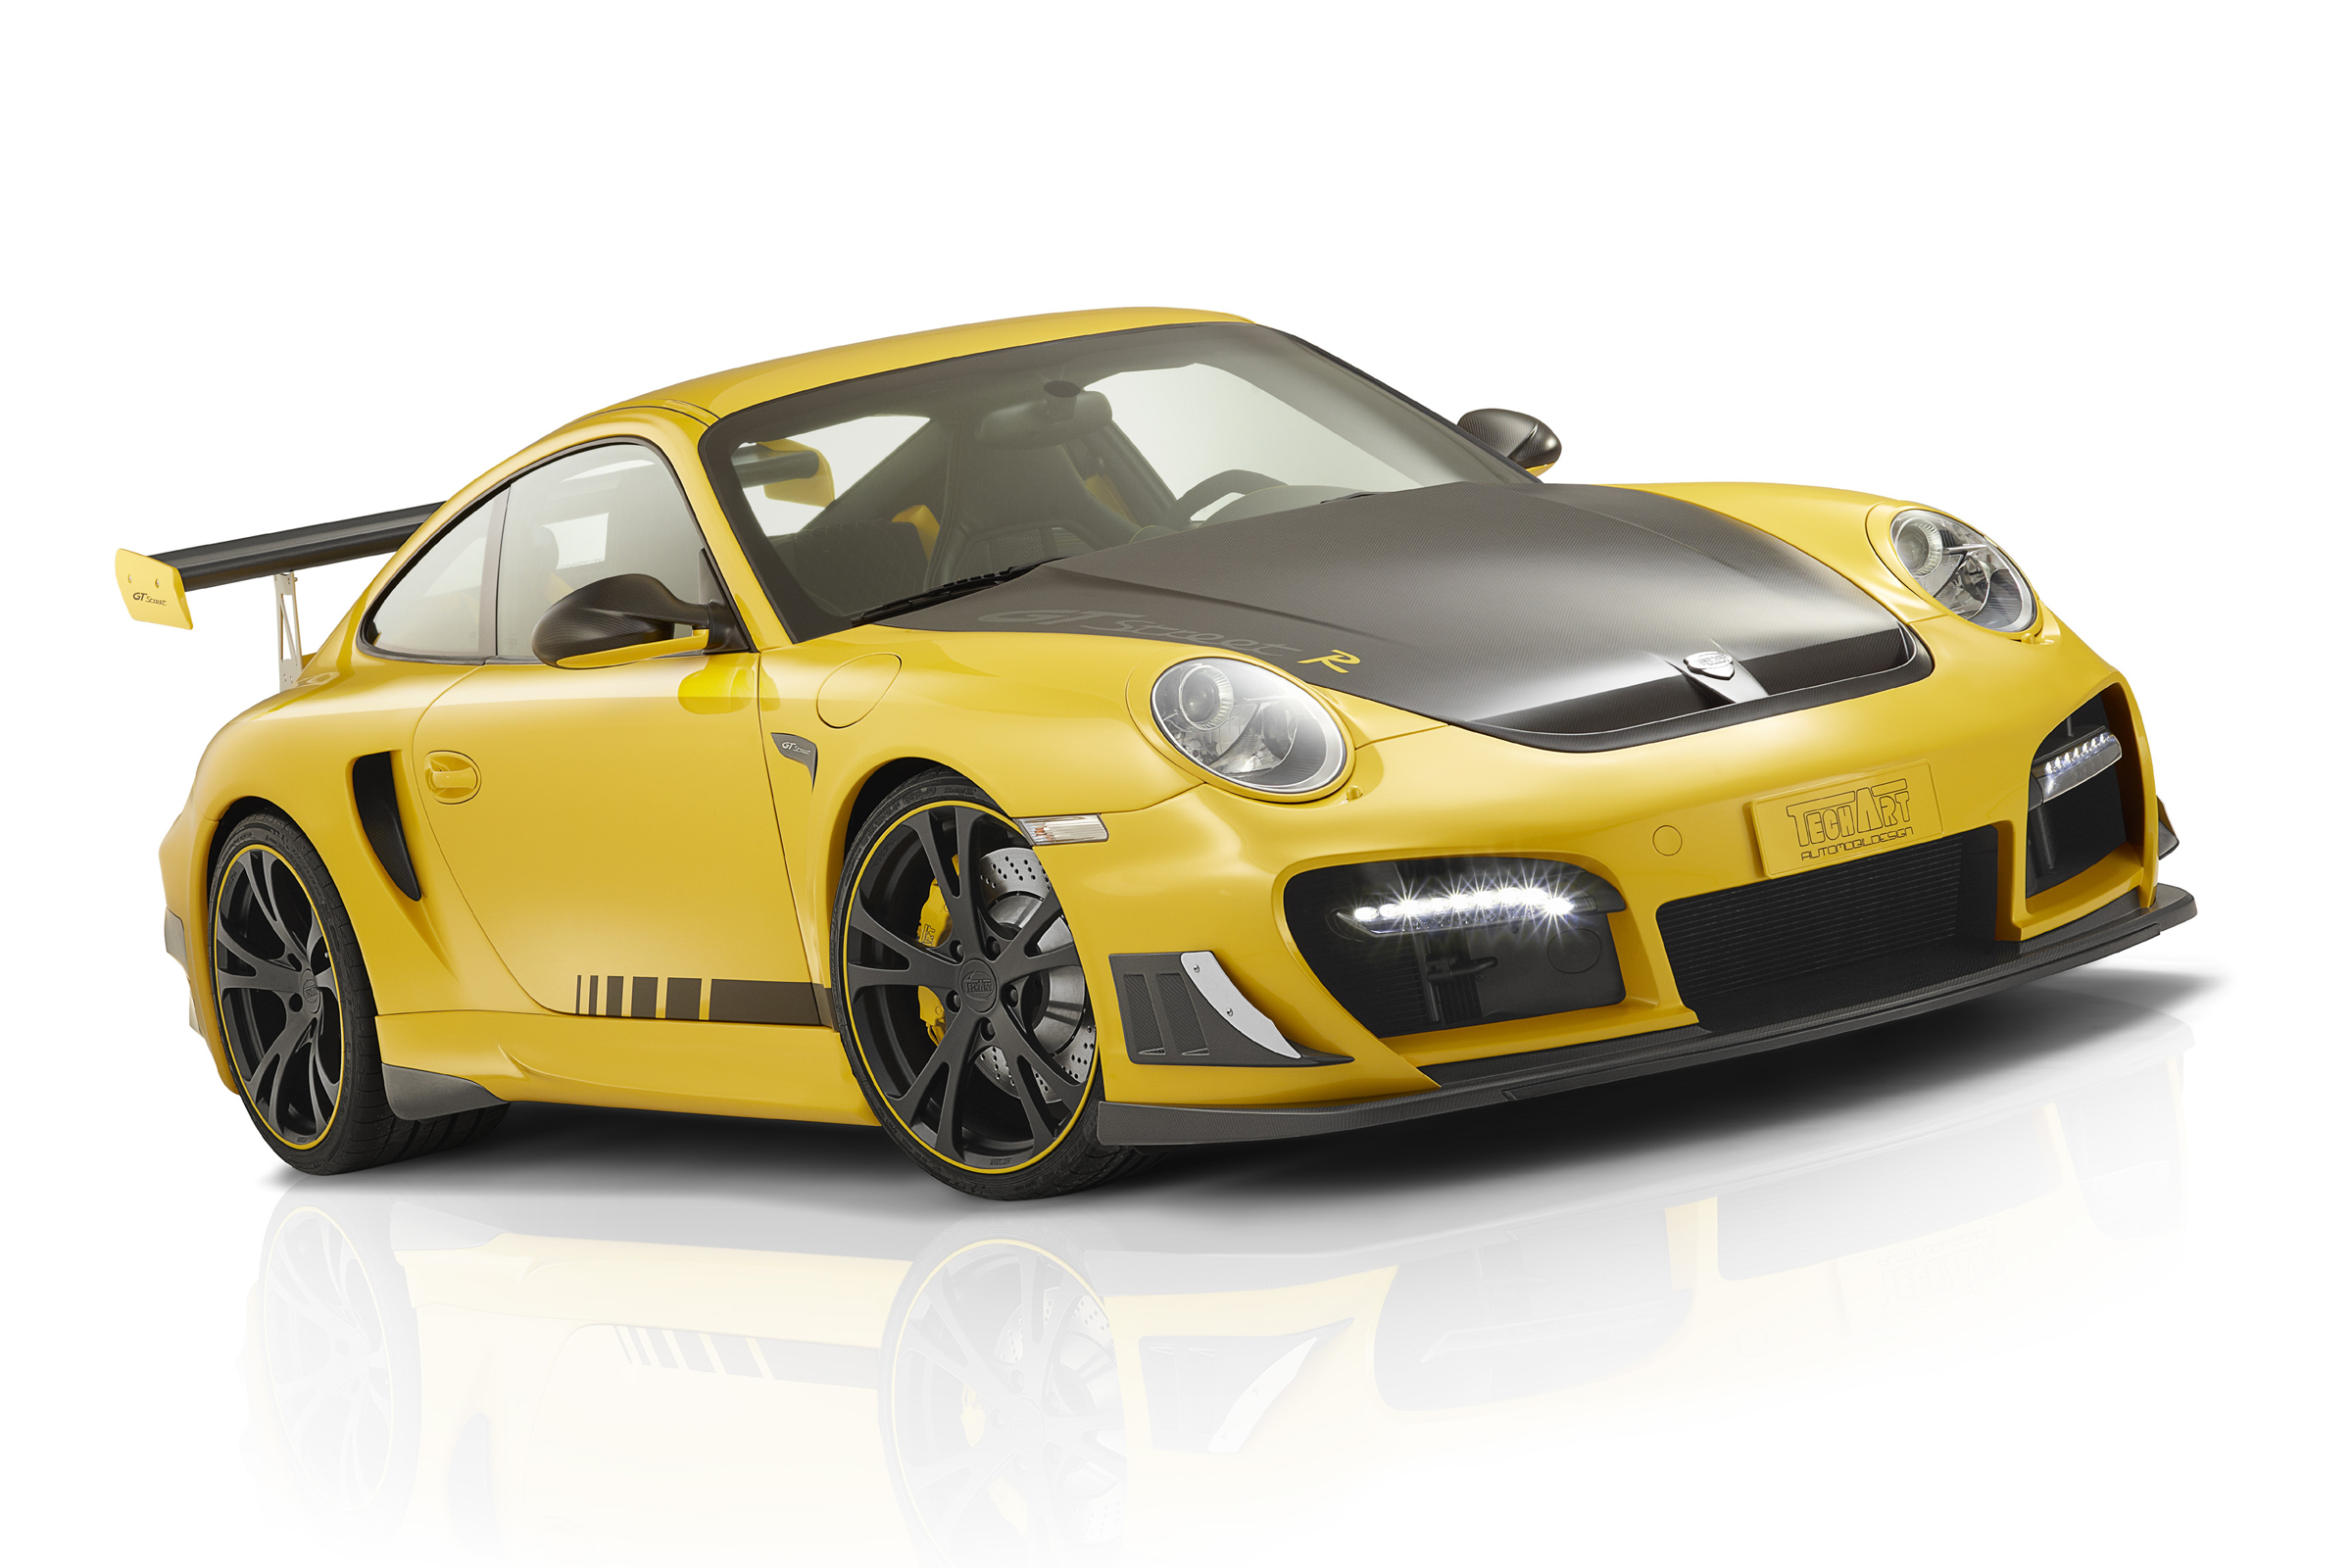 PORSCHE-GT-STREET-R-BY-TechArt-porsche-31562470-2400-1600 Remarkable Techart Porsche 911 Gt2 Gtstreet Rs Cars Trend